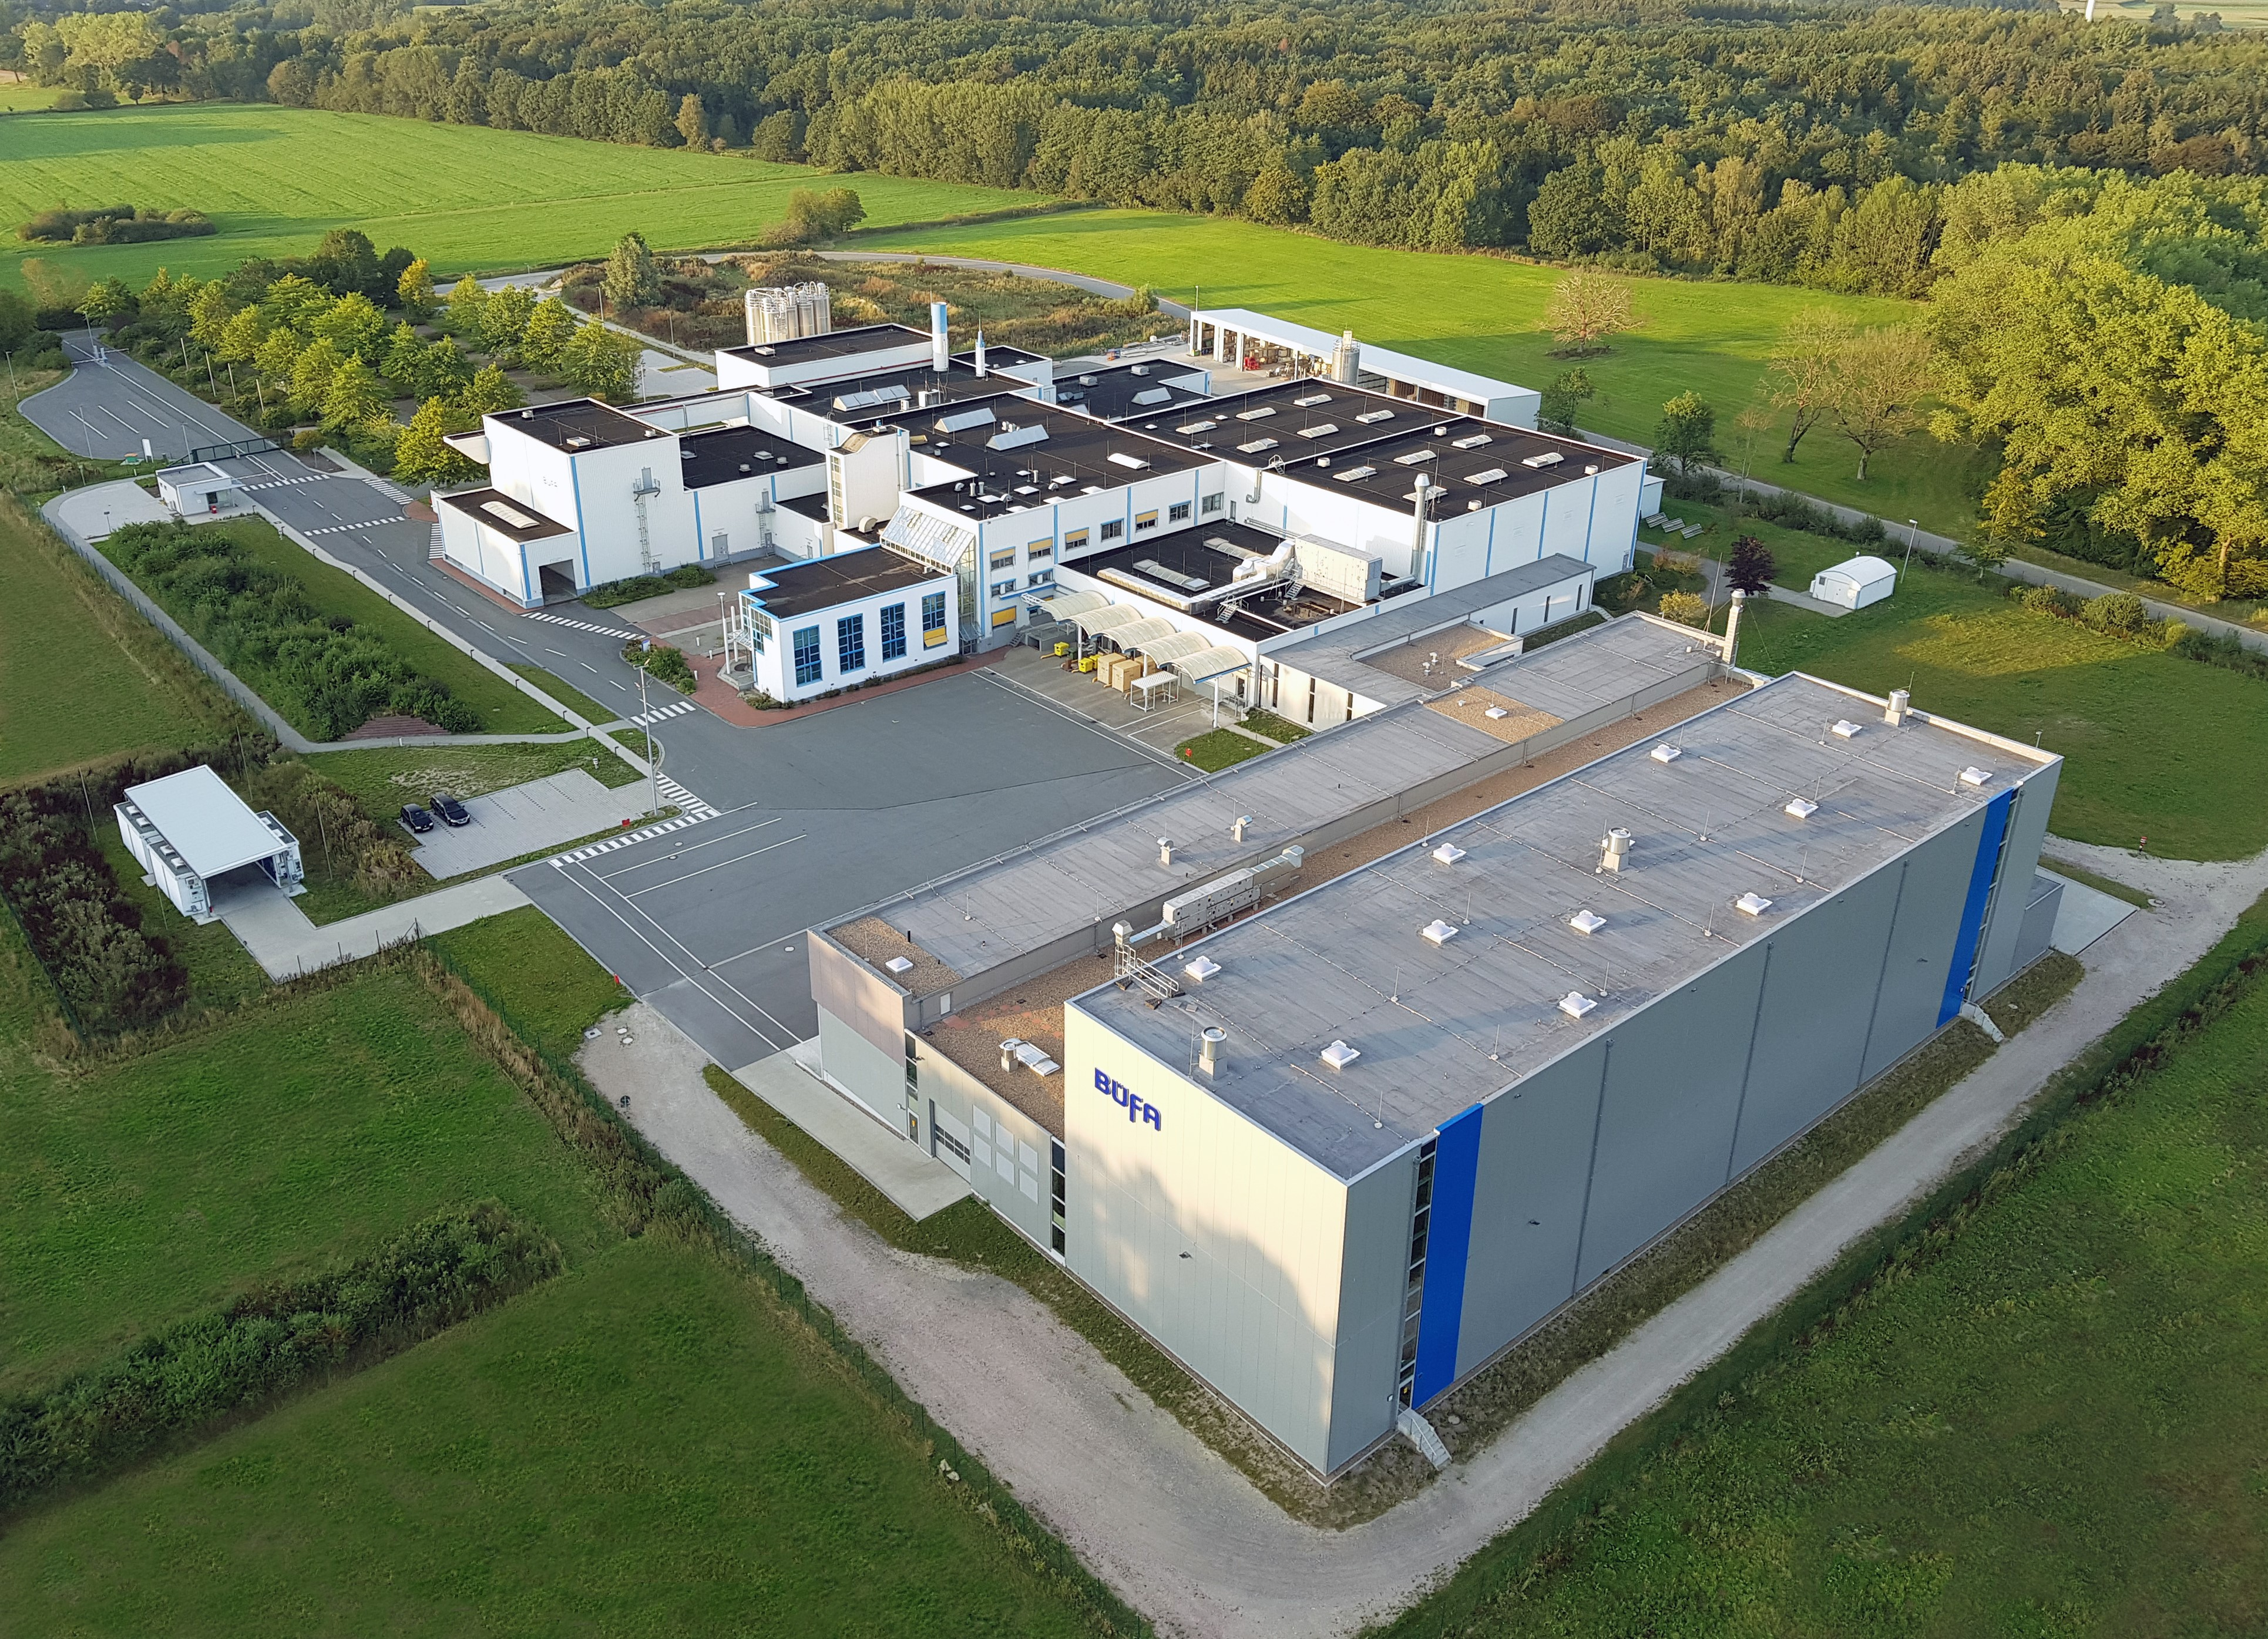 Aerial view of Büfa Composite Systems in Rastede-Liethe, Germany (Source: Büfa)